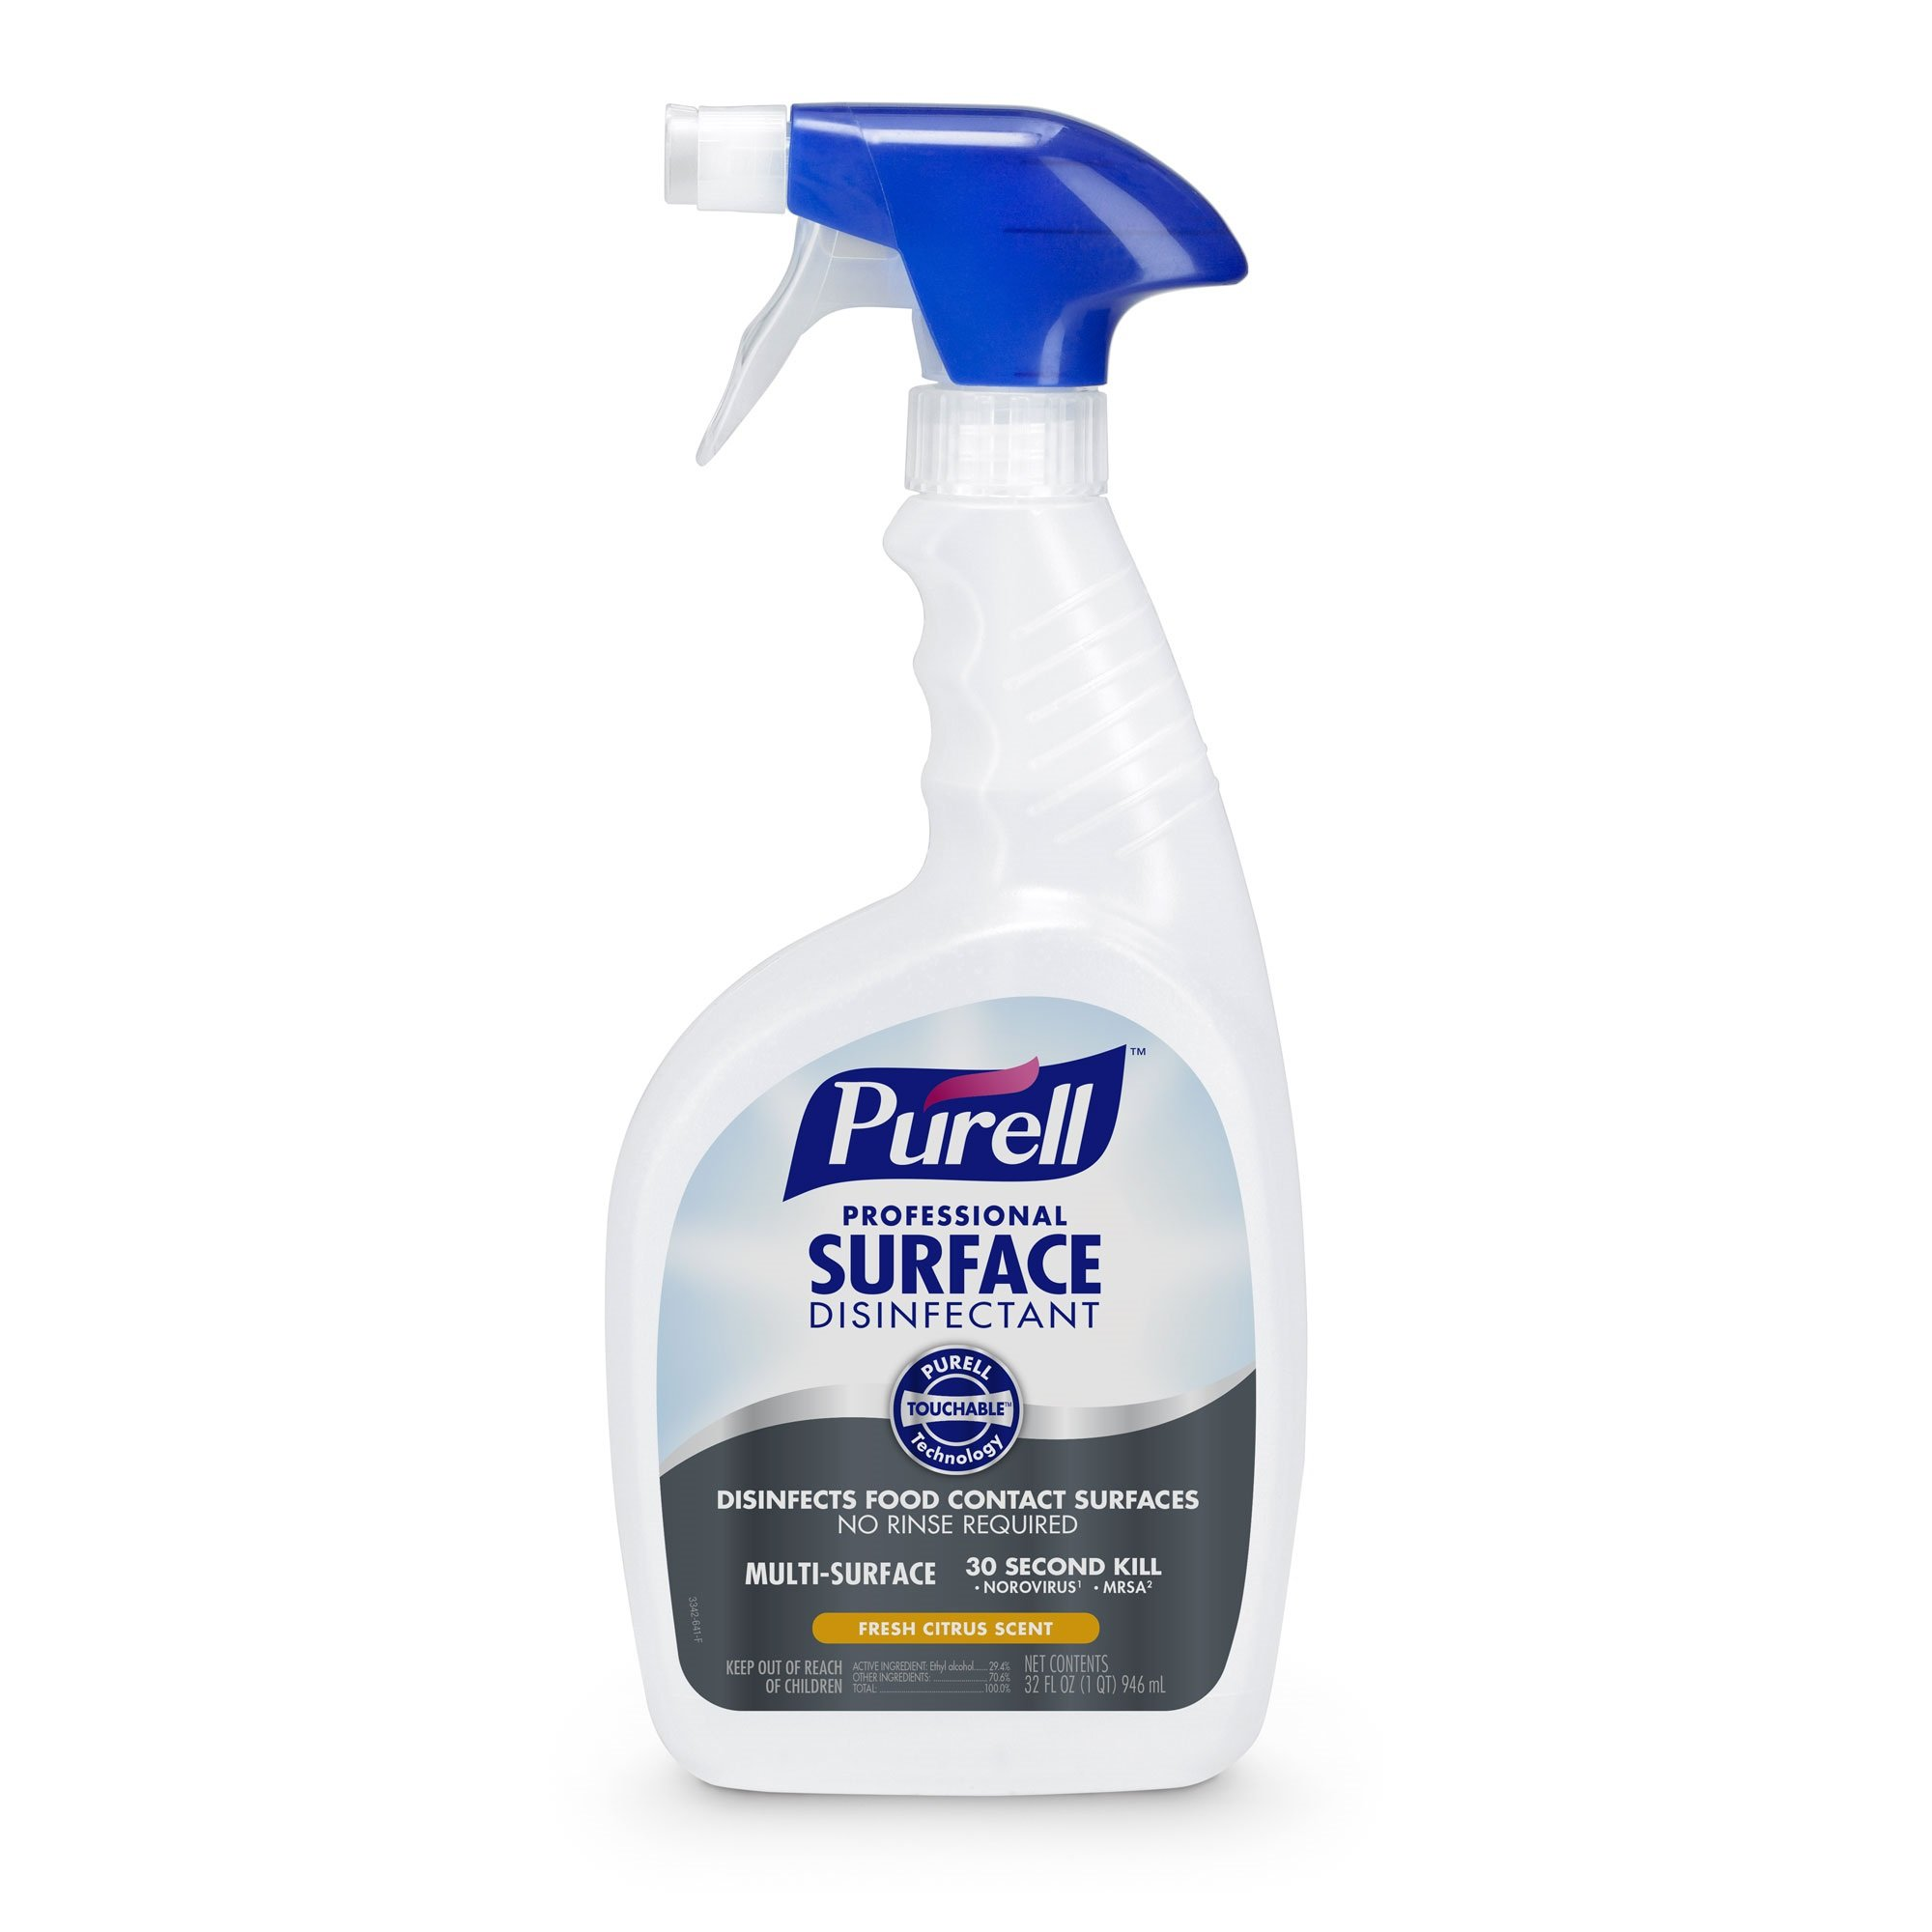 PURELL Professional Surface Disinfectant Spray, Fresh Citrus Scent, 32 fl oz Capped, Trigger Sprayer Bottles (Pack of 3) - 3342-03